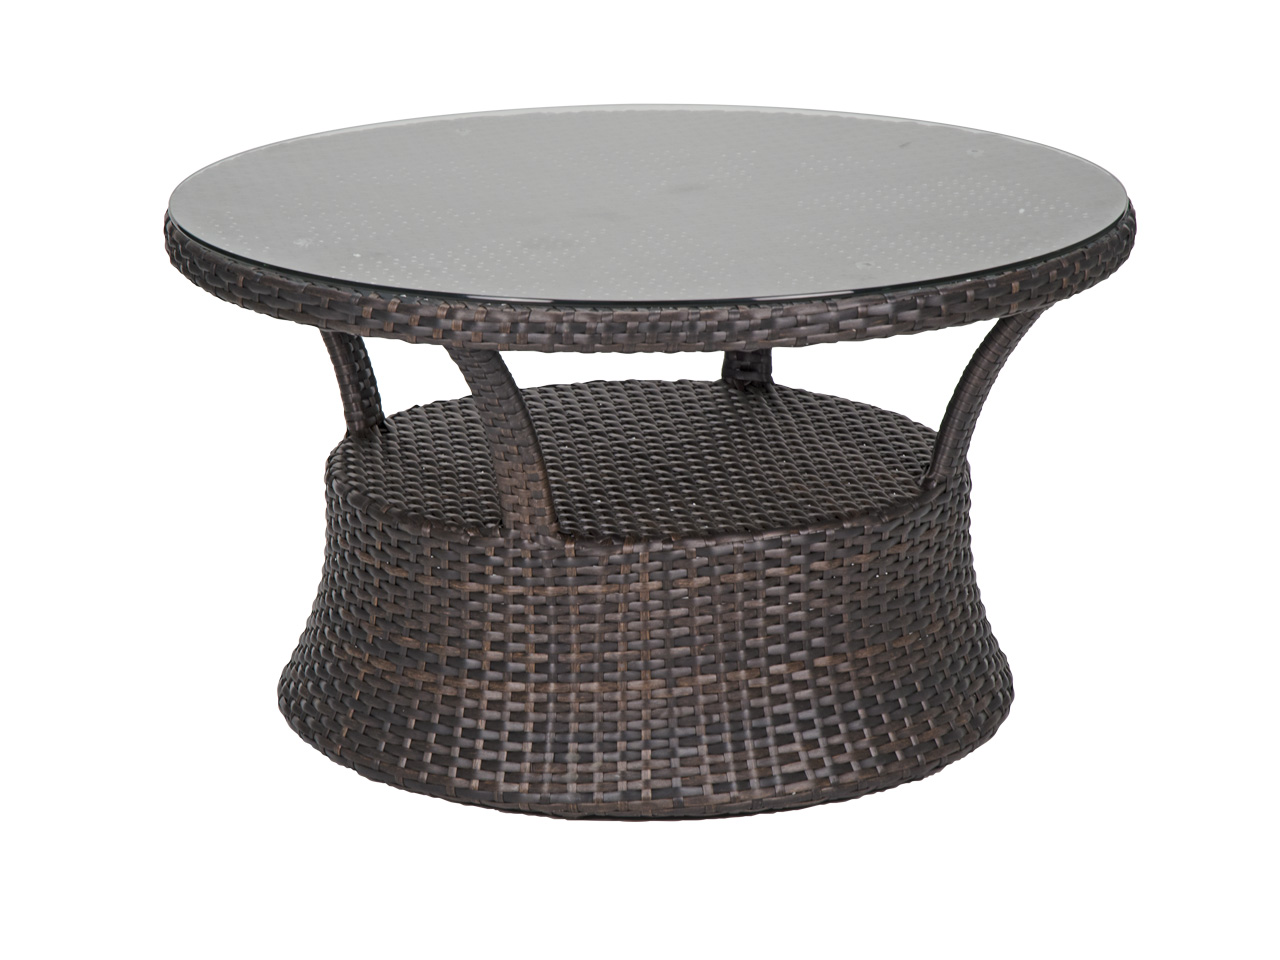 coffee and side tables fortunoff backyard wickr patio umbrella accent table san lucas round aluminum woven resin wicker glass top conversation outdoor dining chairs bunnings metal